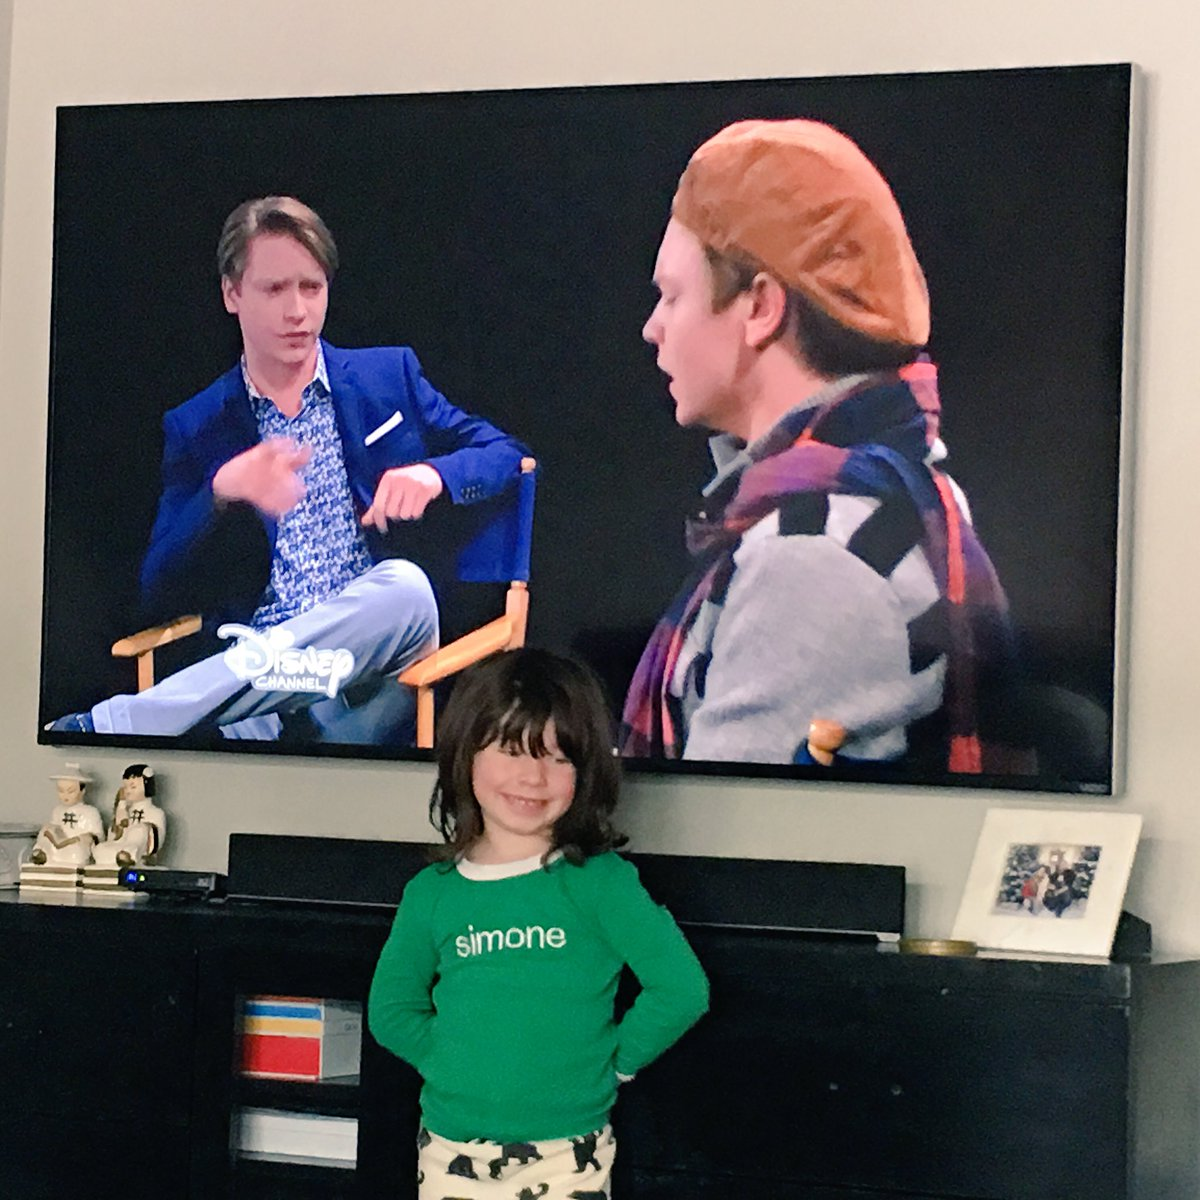 Simone is off today - So OF COURSE we're watching #AustinandAlly - Her FAV! #DezOnDez @CalumWorthy https://t.co/a50FlGyqUd